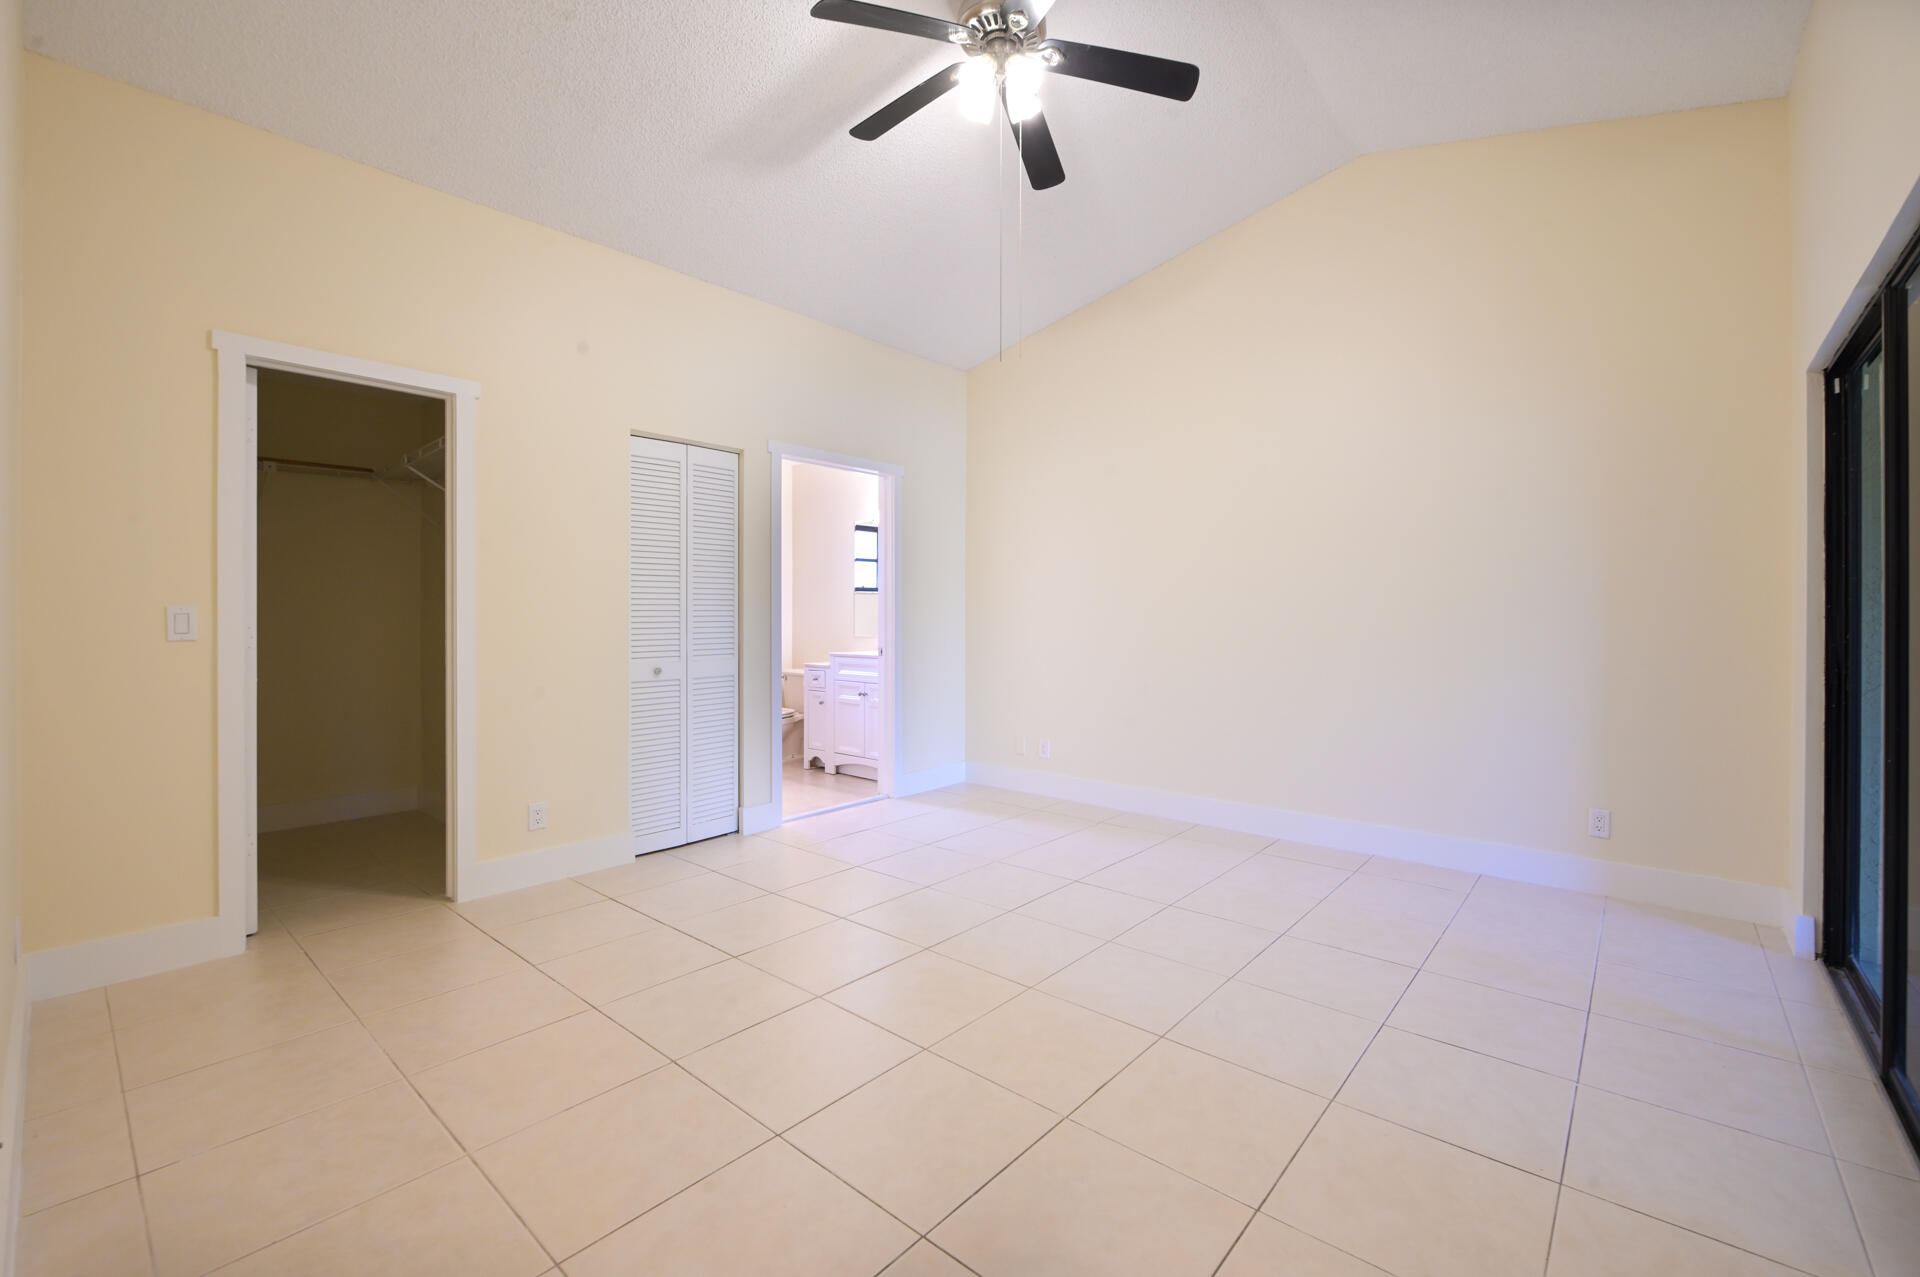 71 Via De Casas Norte Boynton Beach, FL 33426 small photo 10